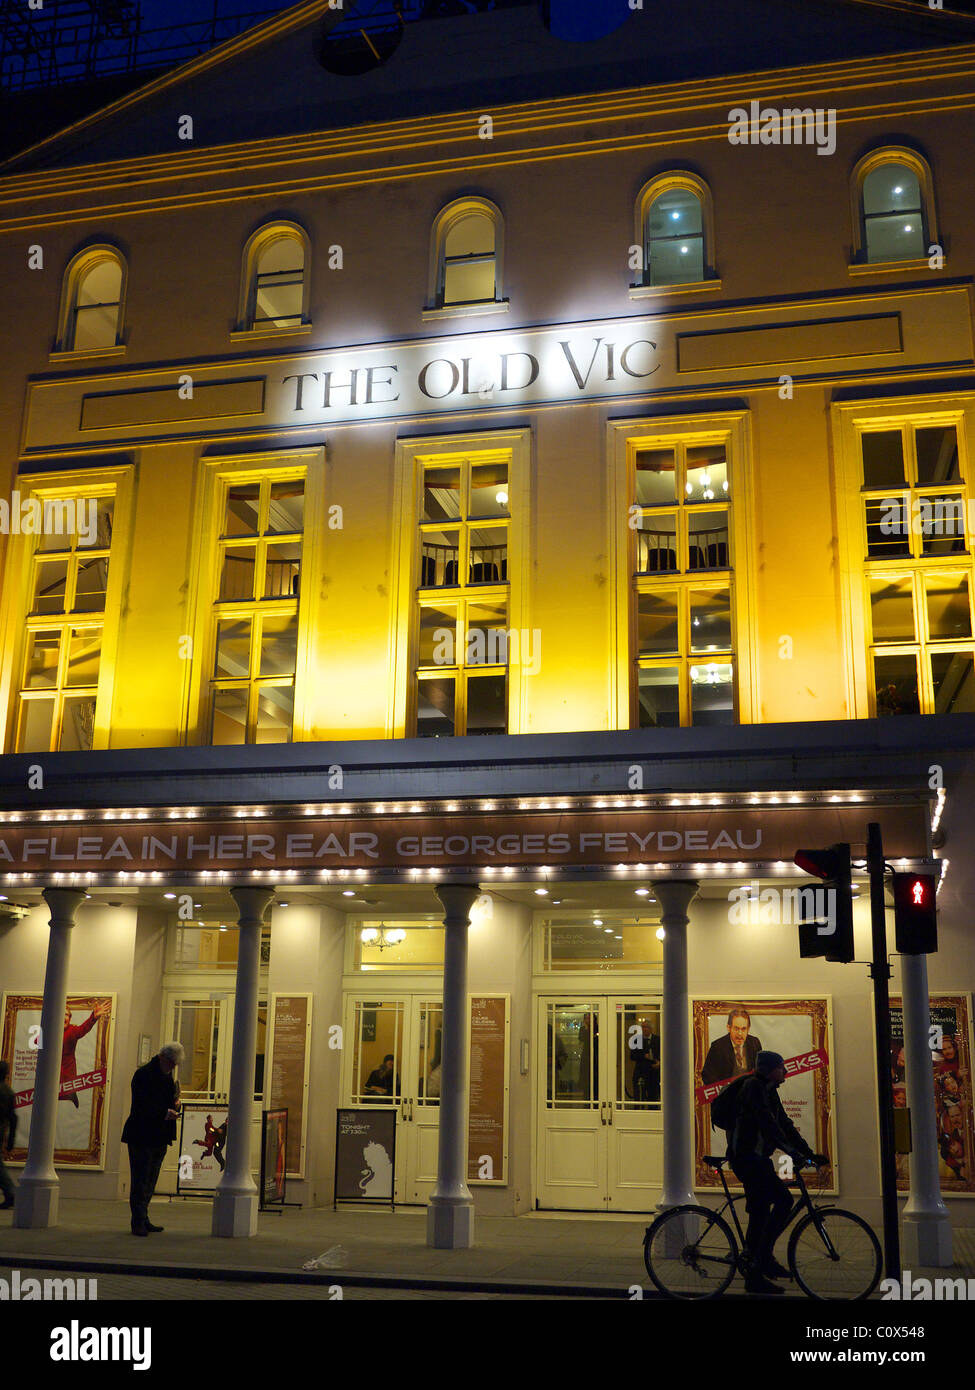 Front view of The Old Vic theatre floodlit at night in London - Stock Image